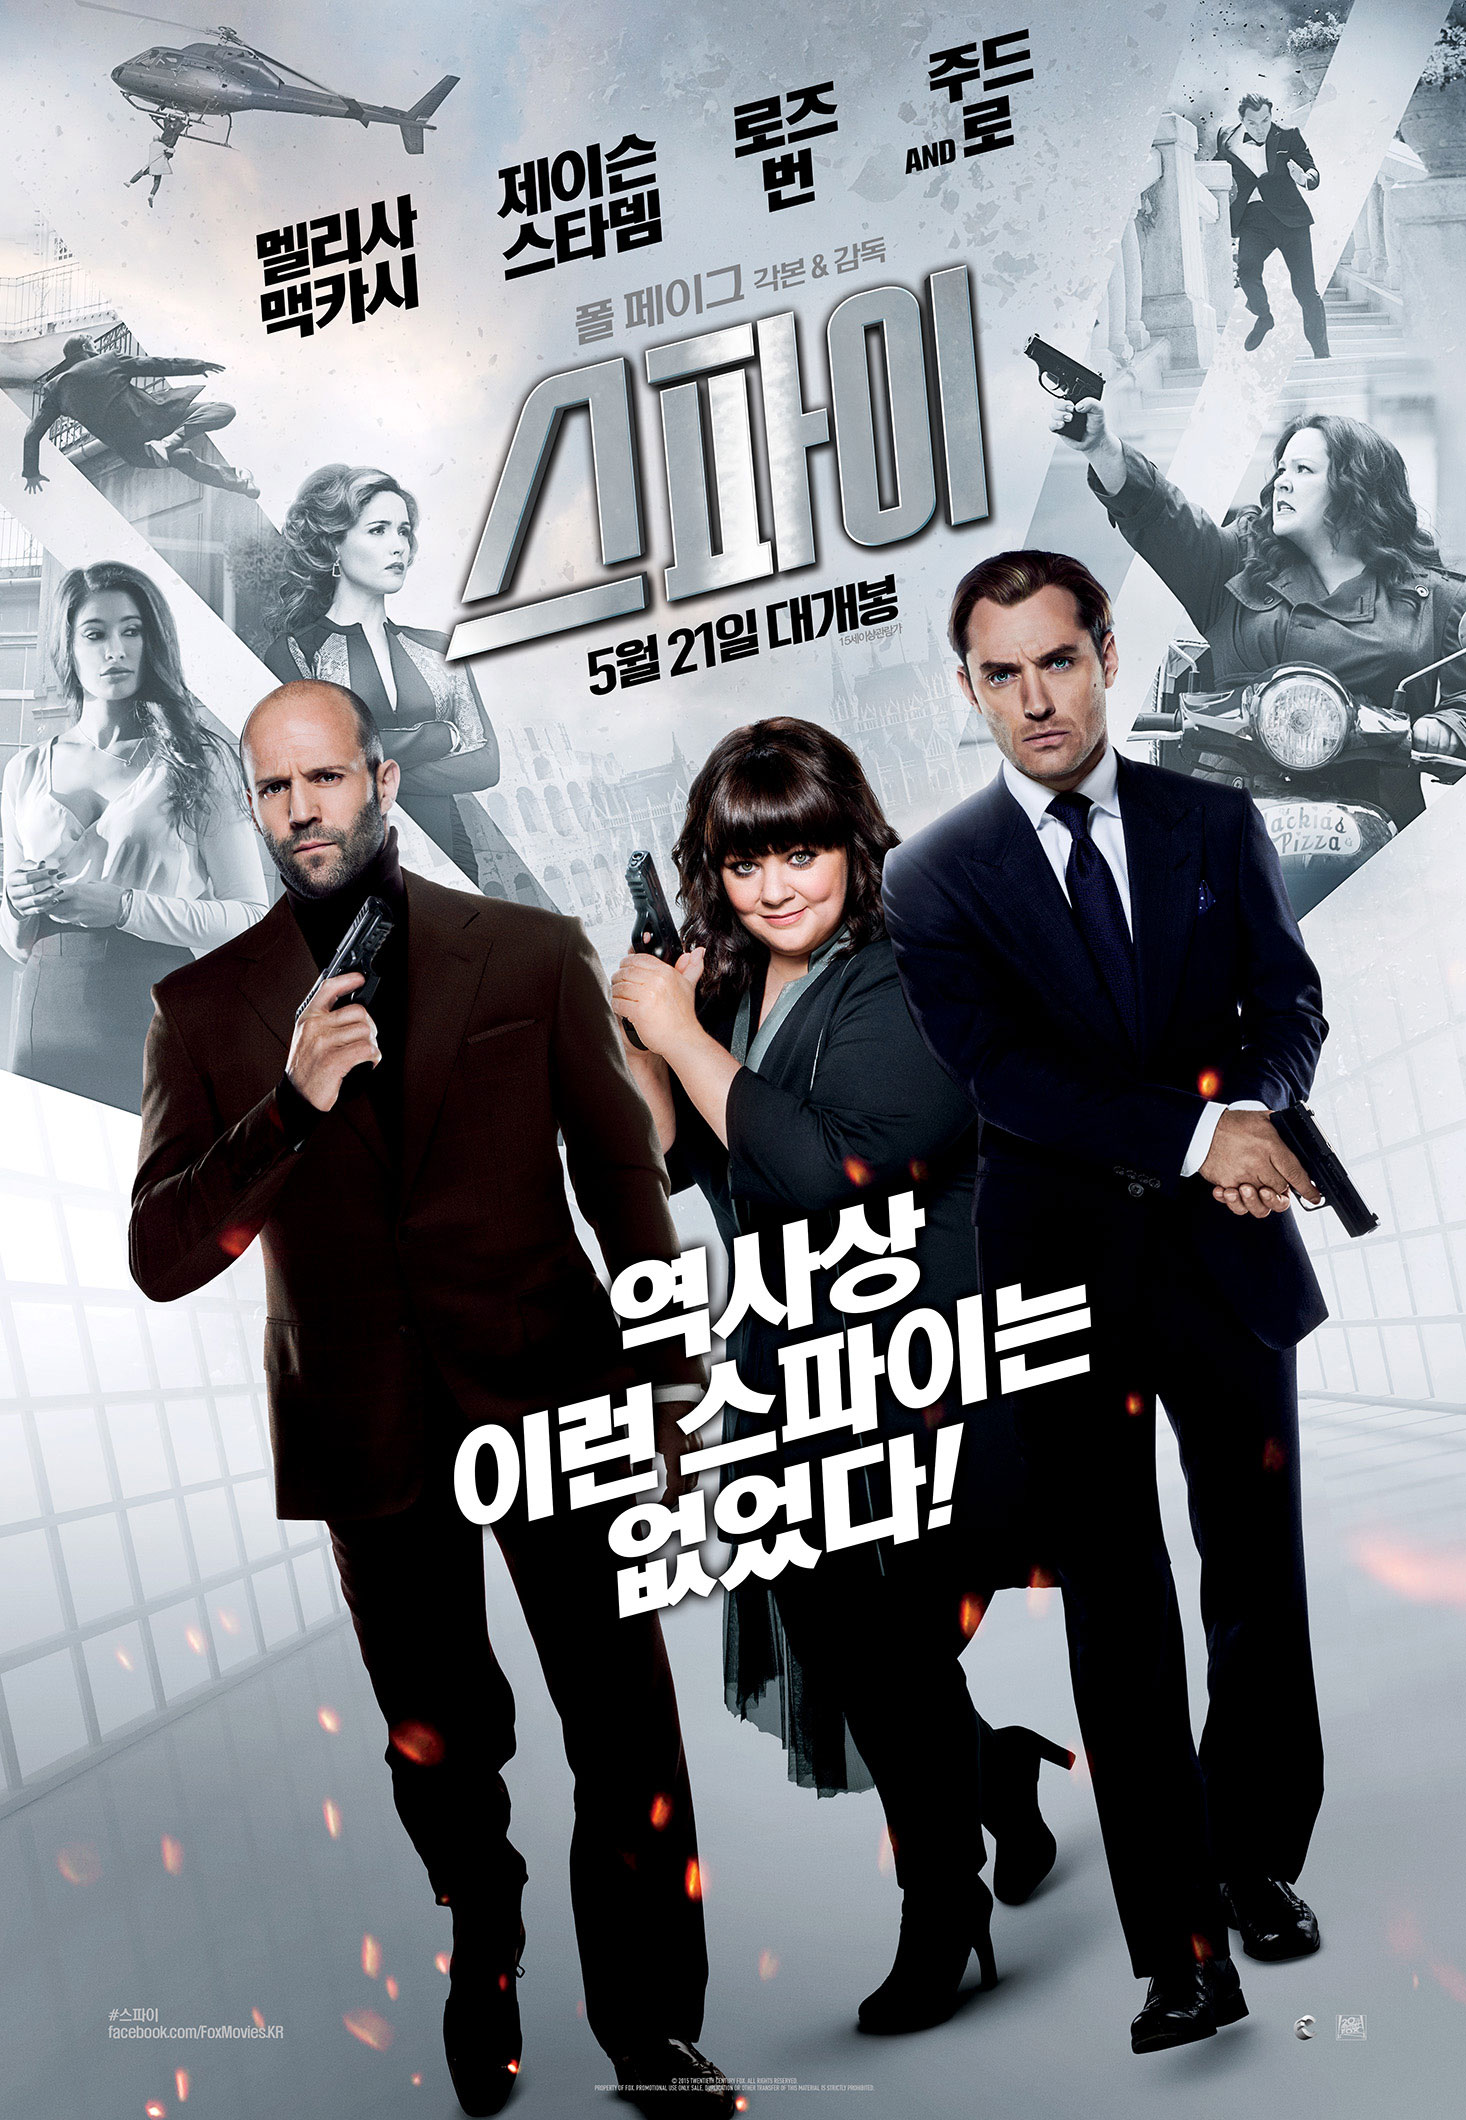 Spy-International Poster-08Maio2015-01